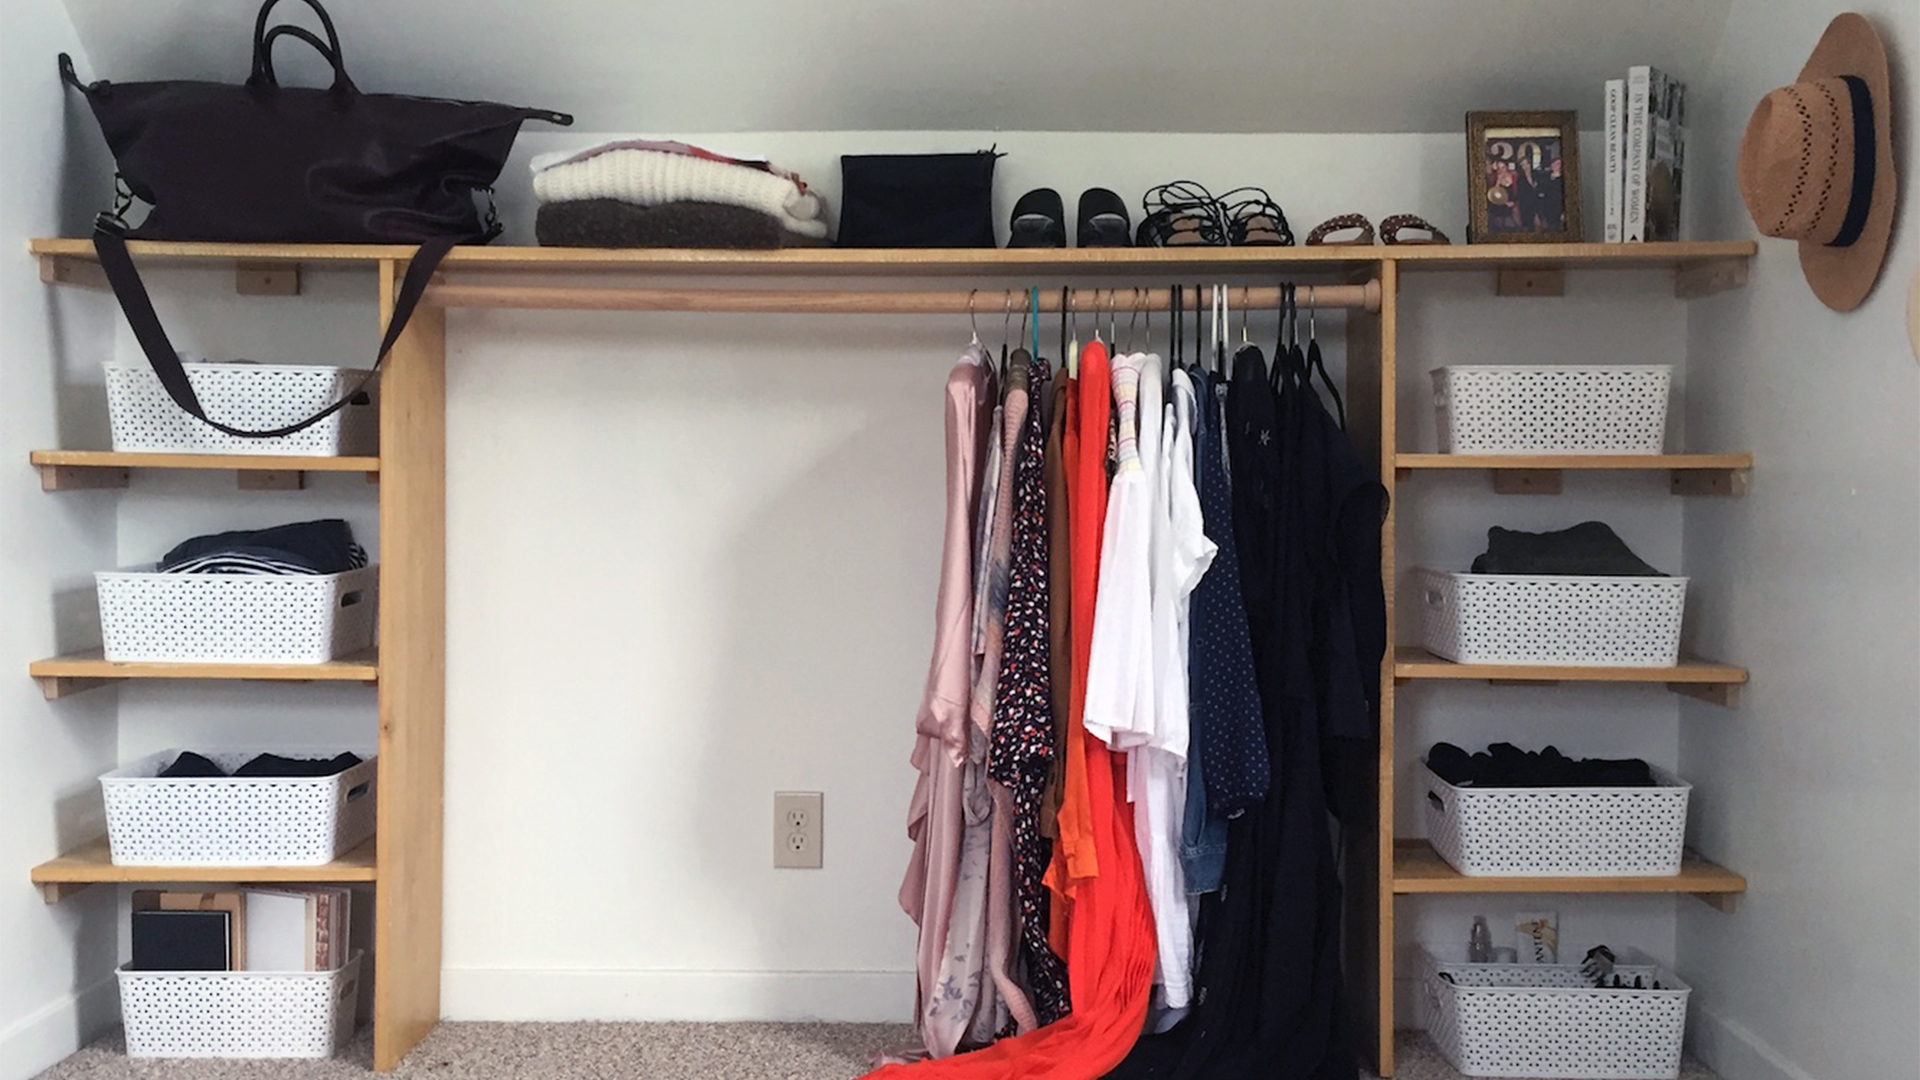 How To Make A Dream Diy Dressing Room Life Storage Blog